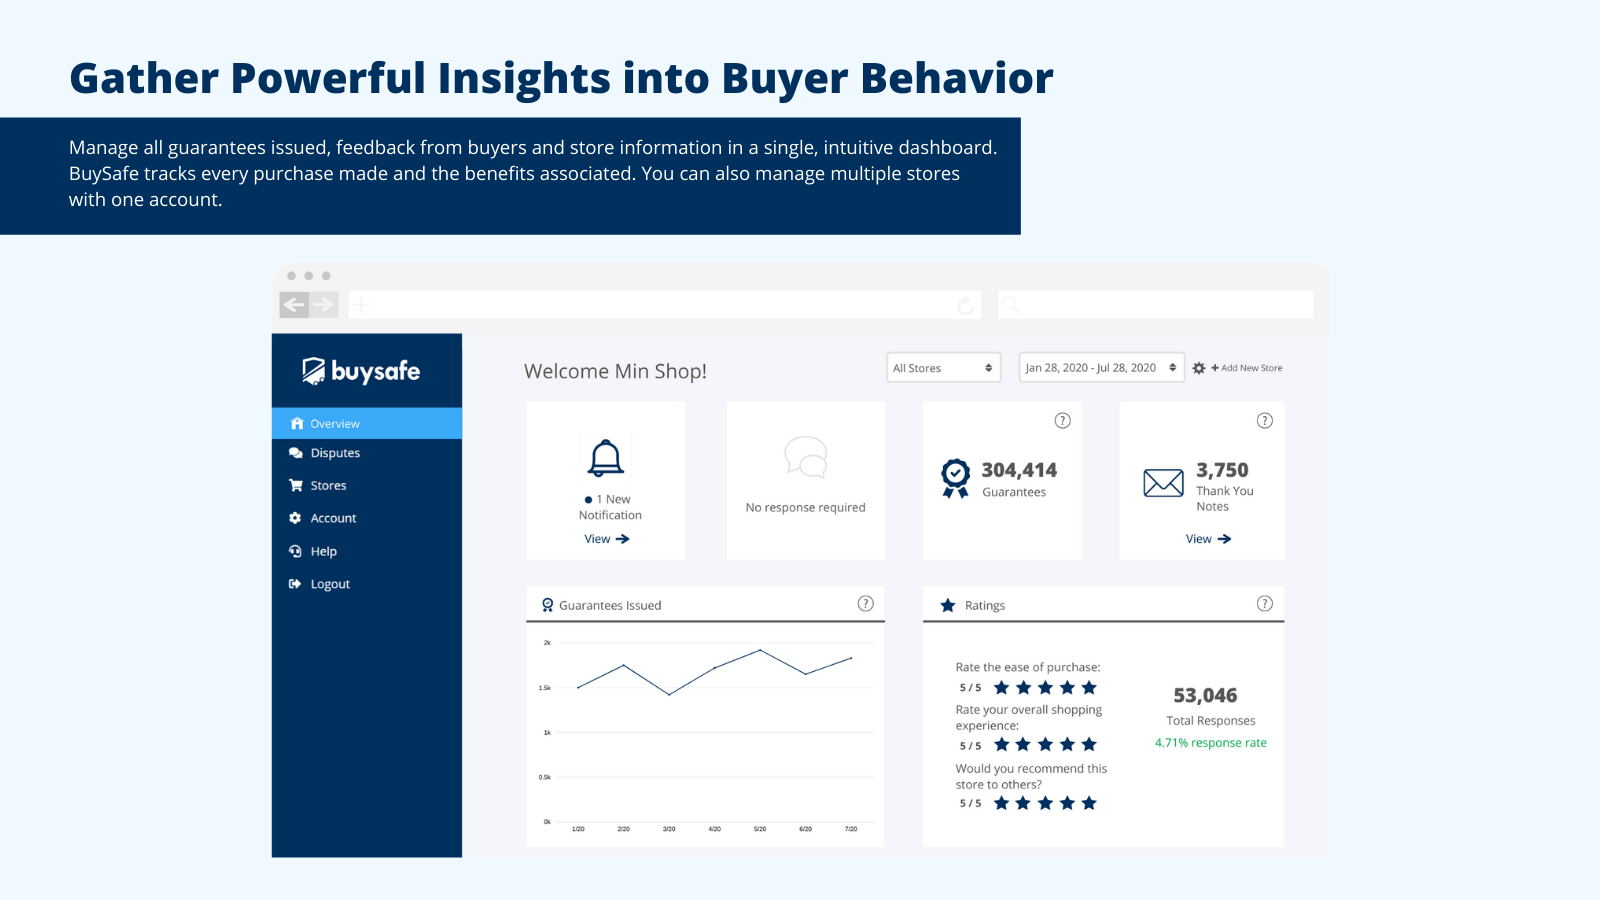 Gather powerful insights into buyer behavior in your dashboard